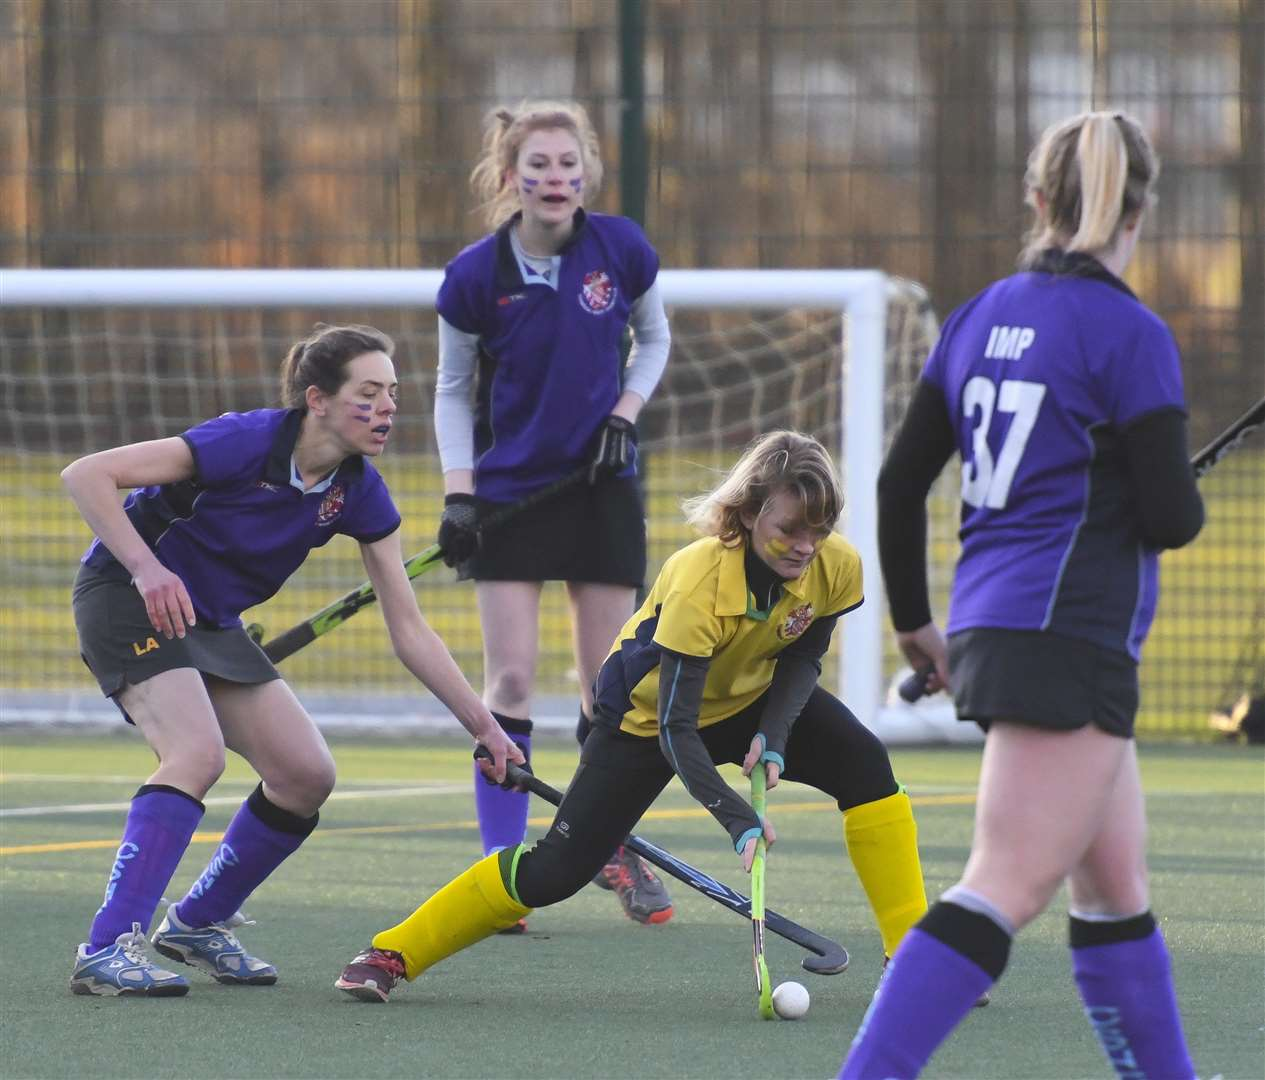 Cambridge South's Polly Lockyer, in yellow . Picture: Keith Heppell